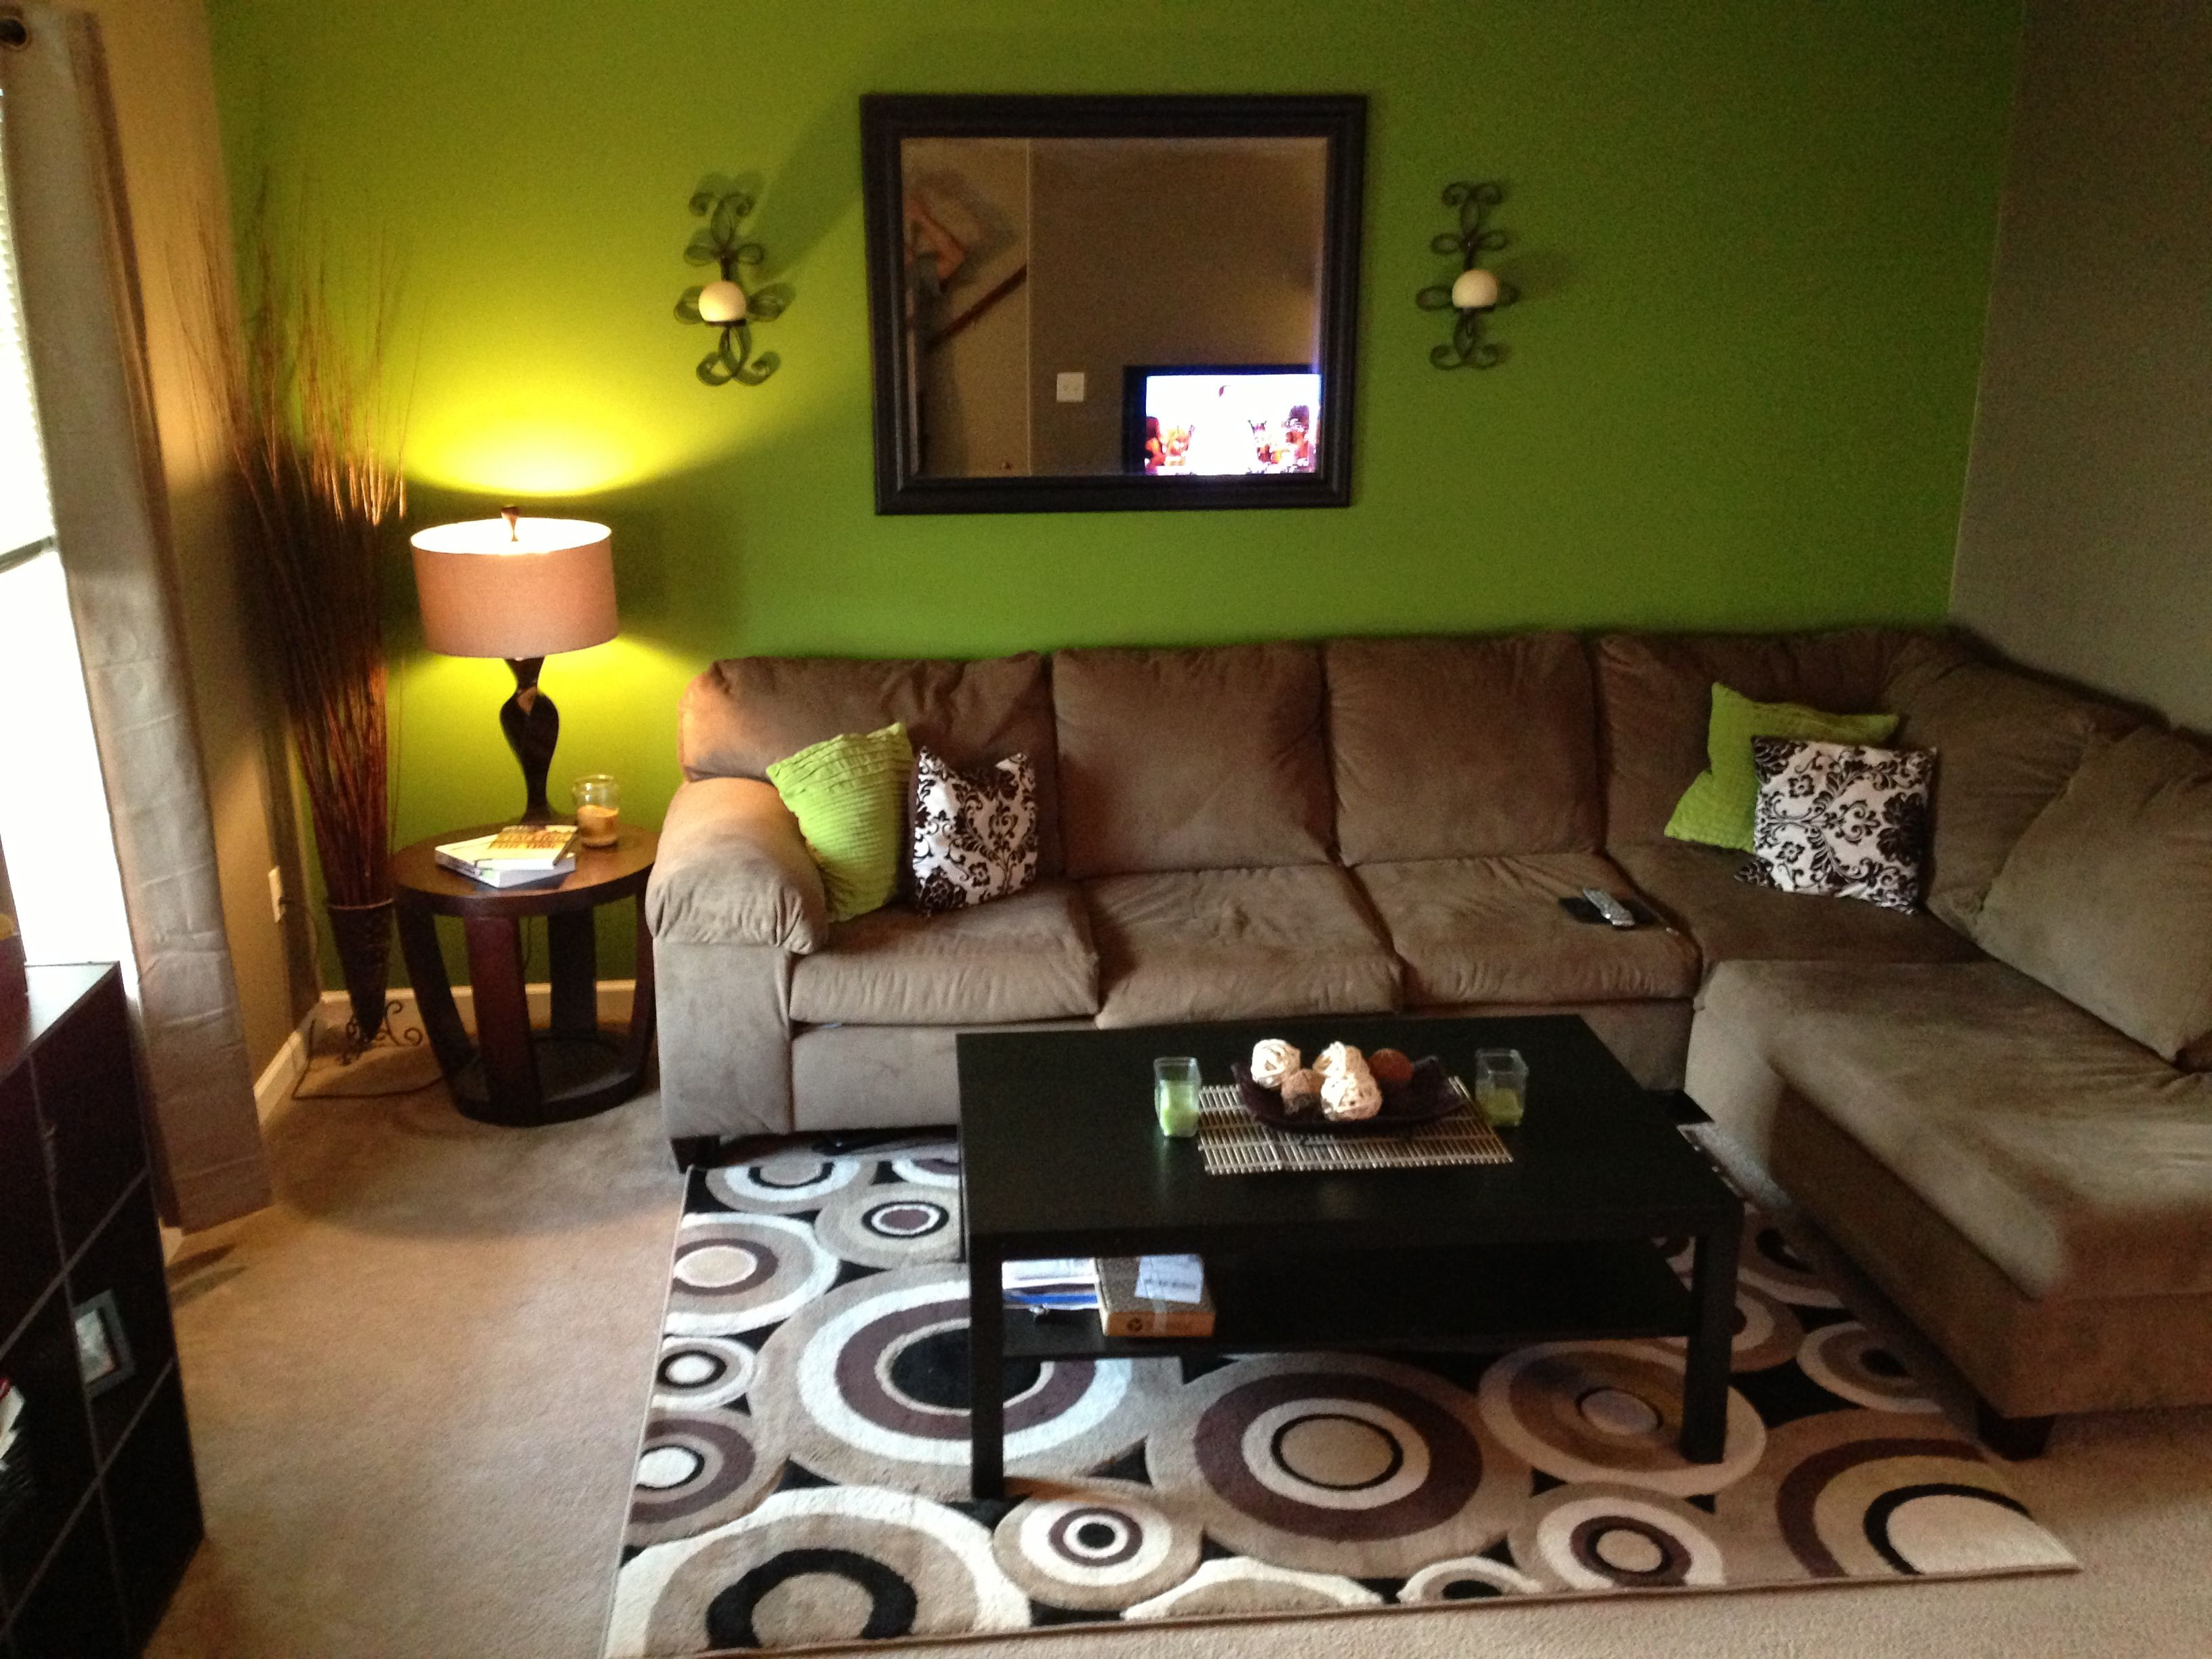 Green and brown living room living room green living - Green living room ideas decorating ...